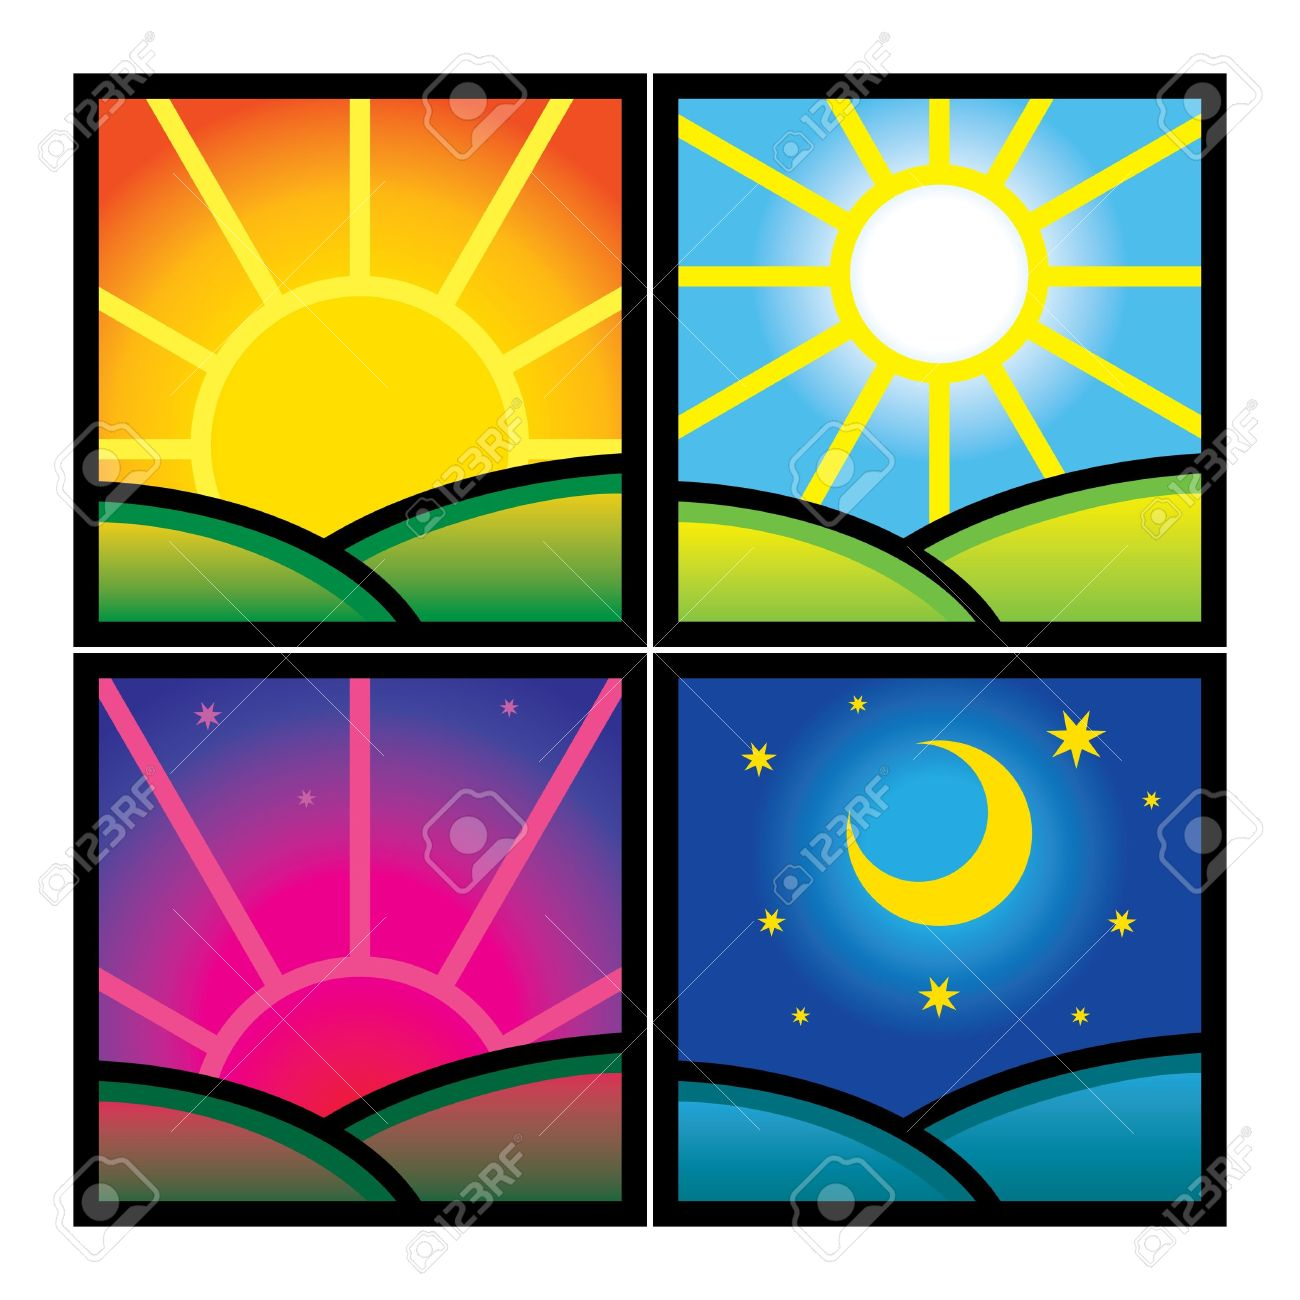 Afternoon clipart free jpg stock Afternoon Clipart   Clipart Panda - Free Clipart Images jpg stock